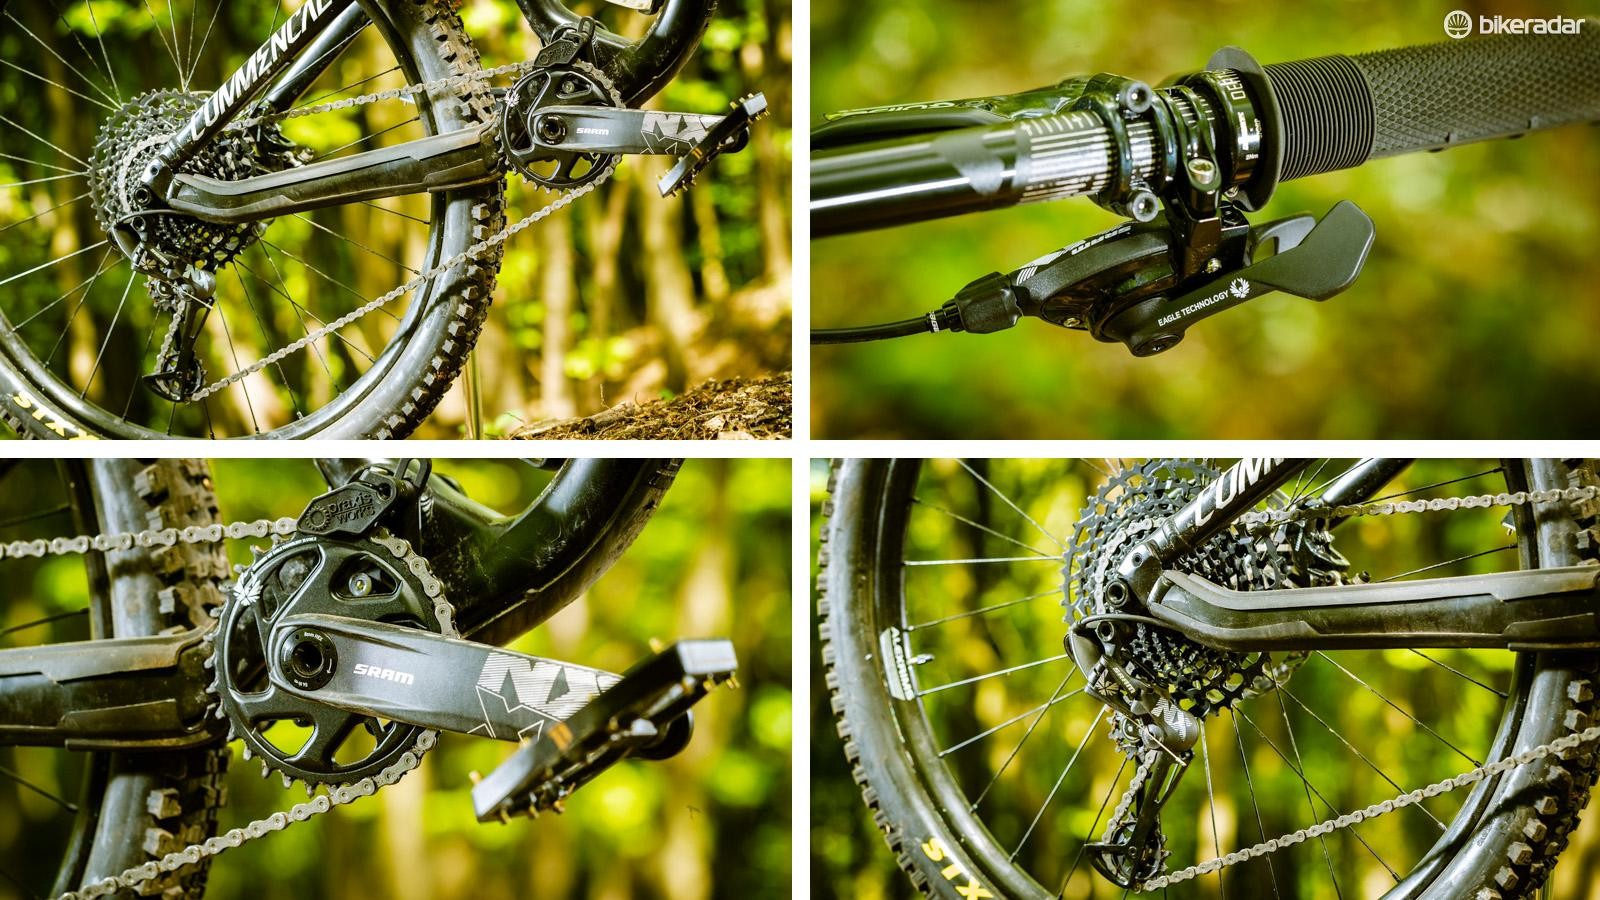 SRAM has brought its 12-speed Eagle technology to its entry-level NX groupset